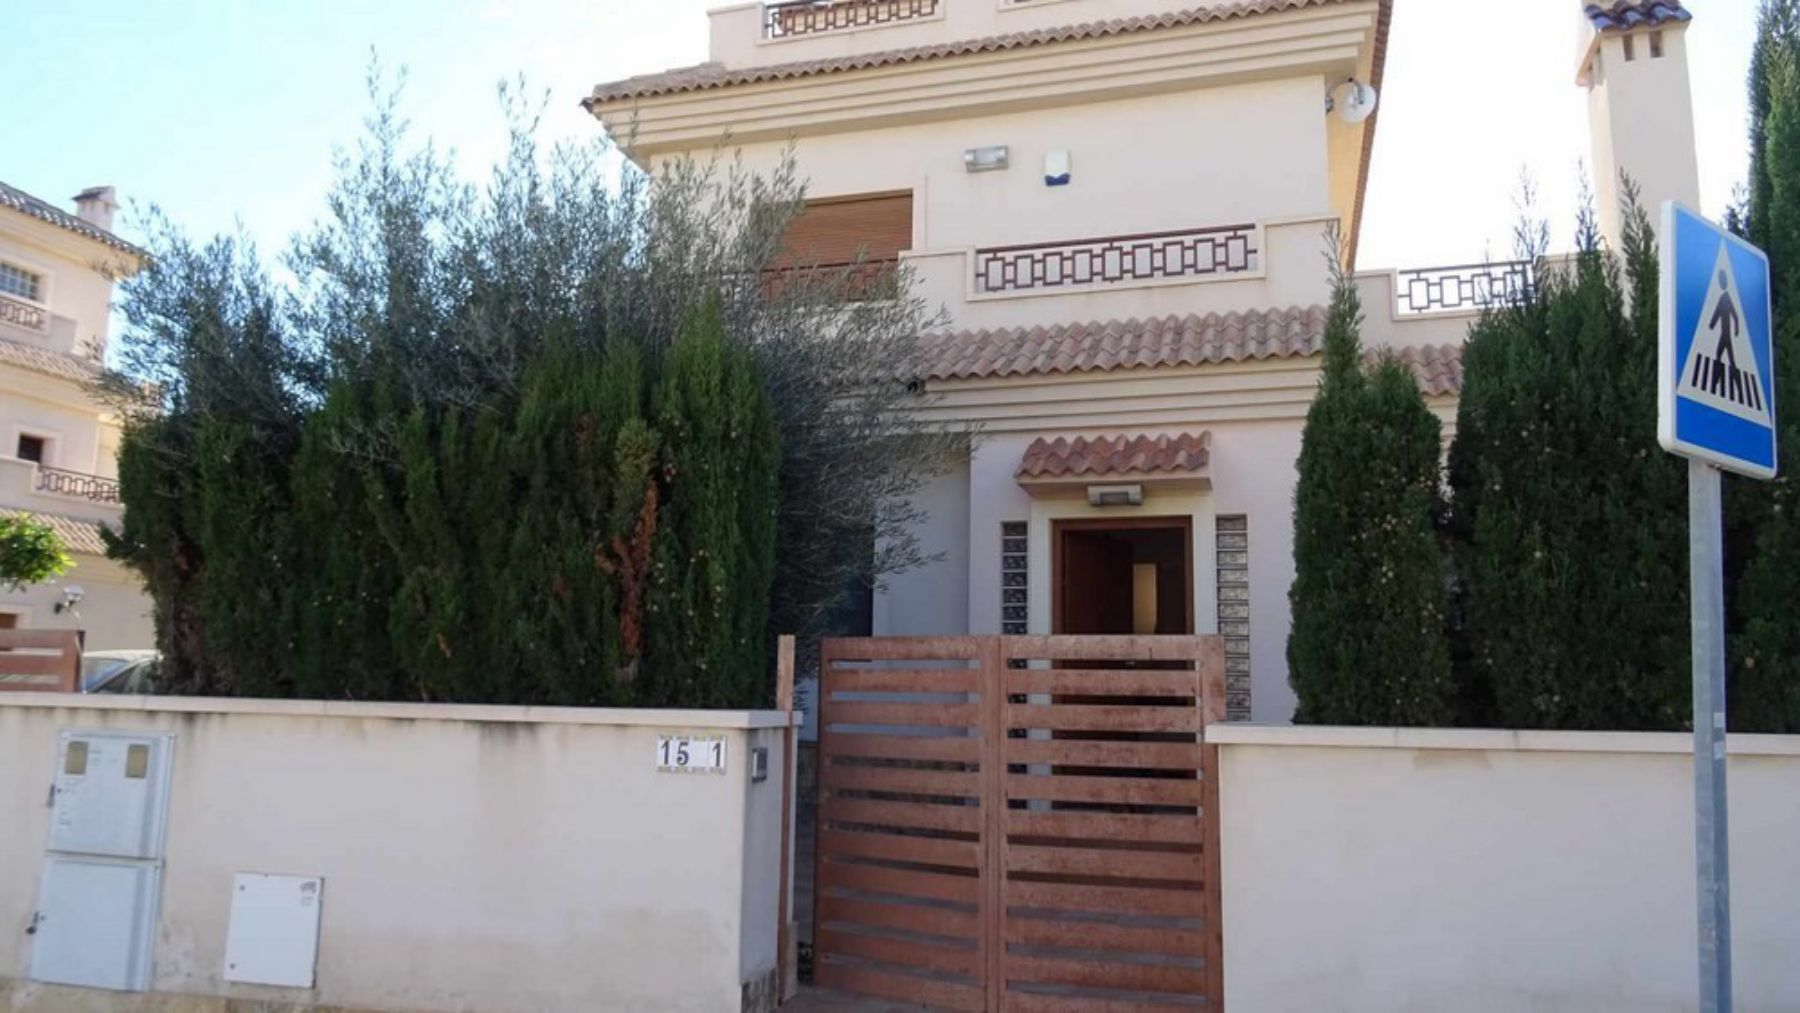 3 Bedrooms Villa For Sale with Swimming Pool in Orihuela Costa